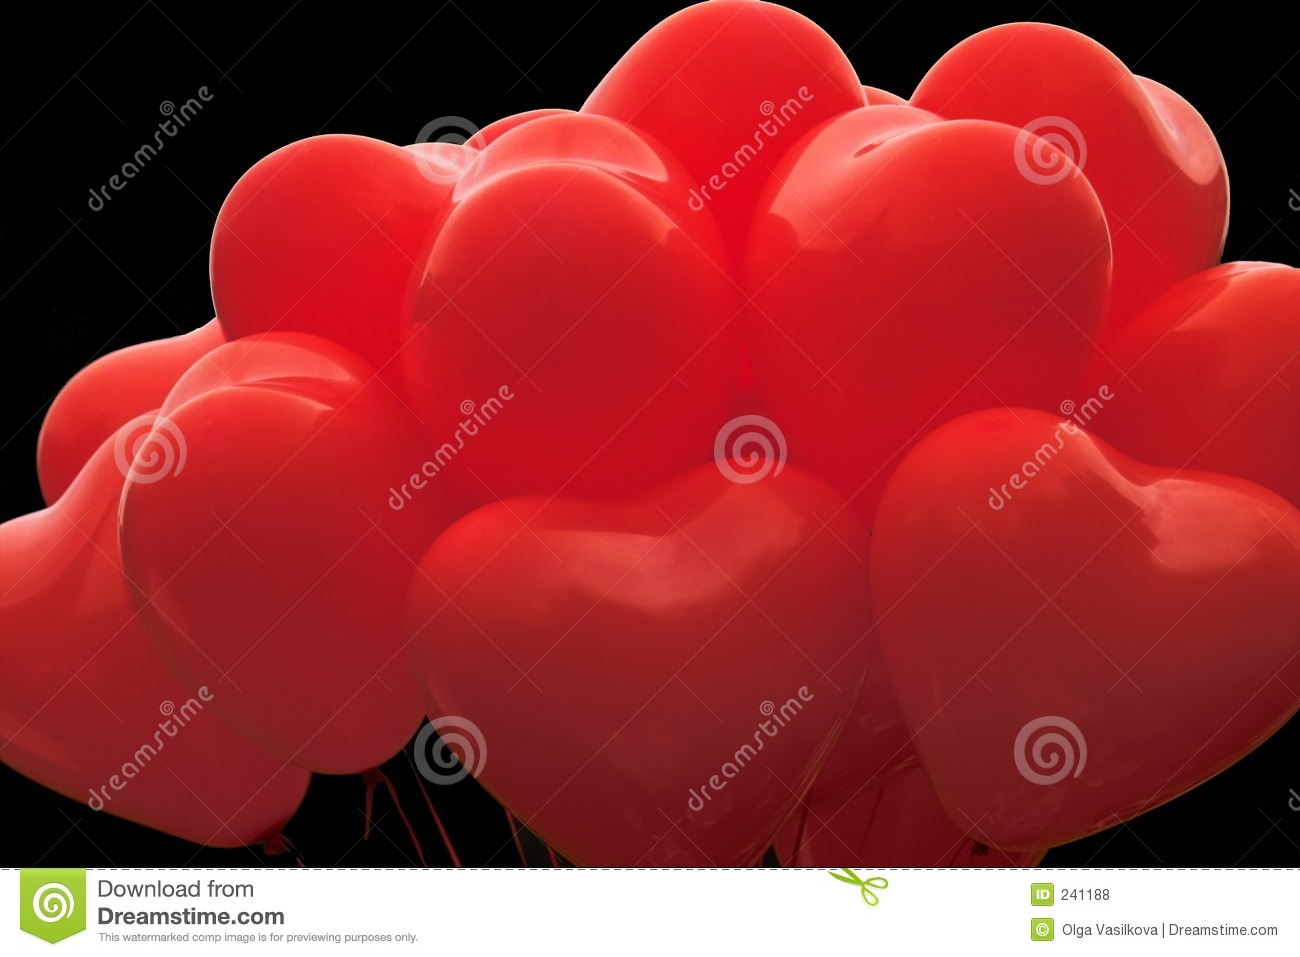 Red Heart Shaped Balloons Royalty Free Stock Photos - Image: 241188